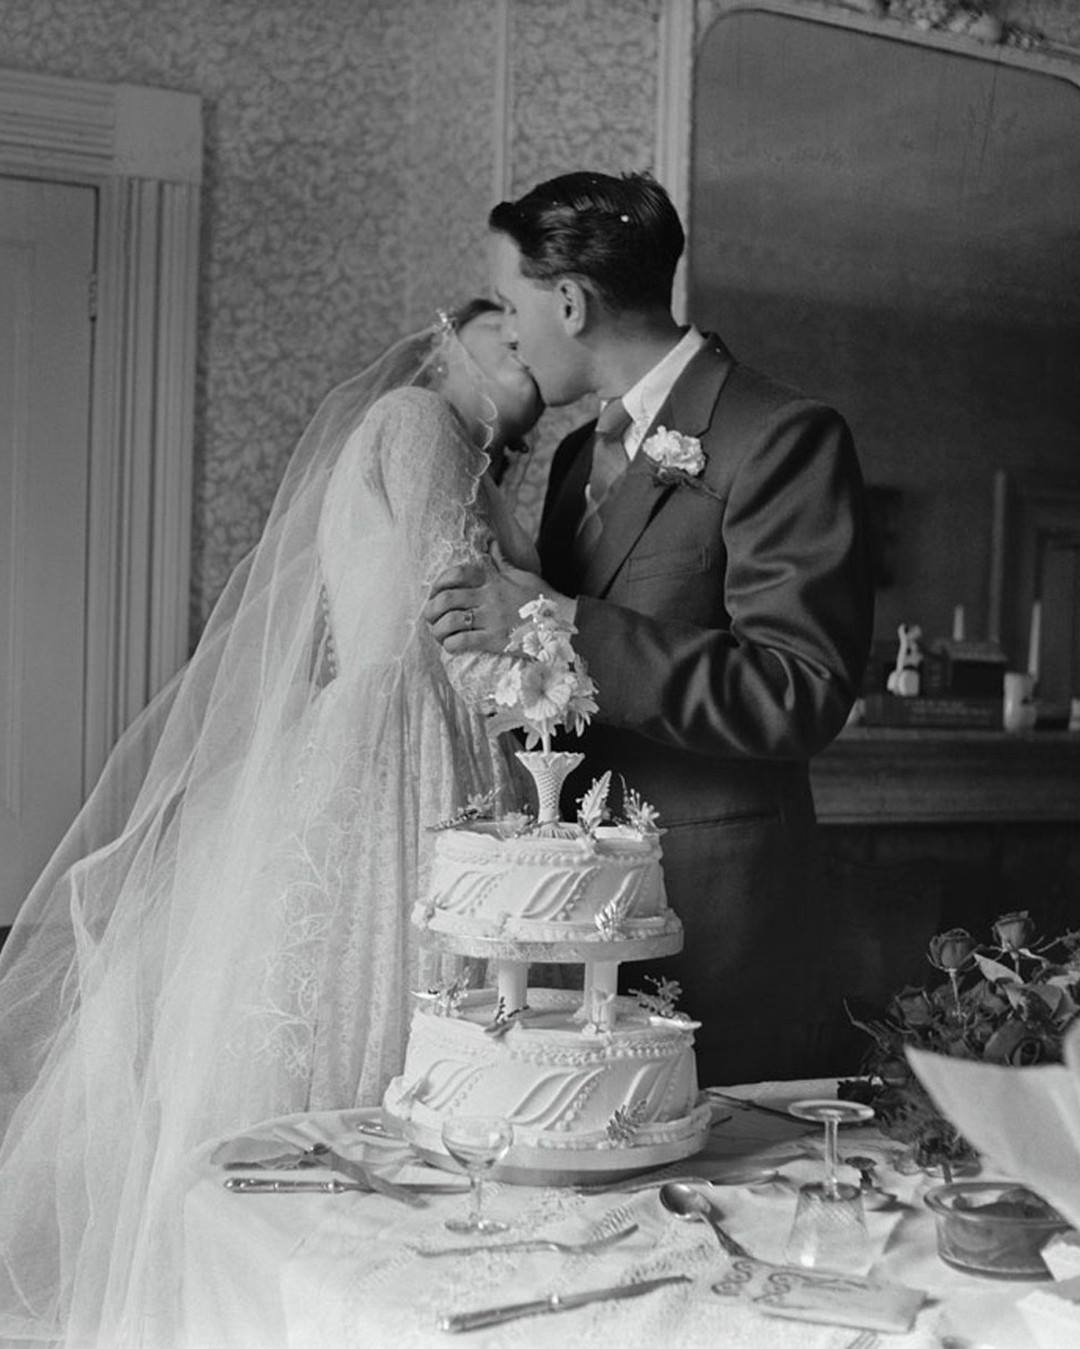 kissing-by-wedding-cake-1.jpg